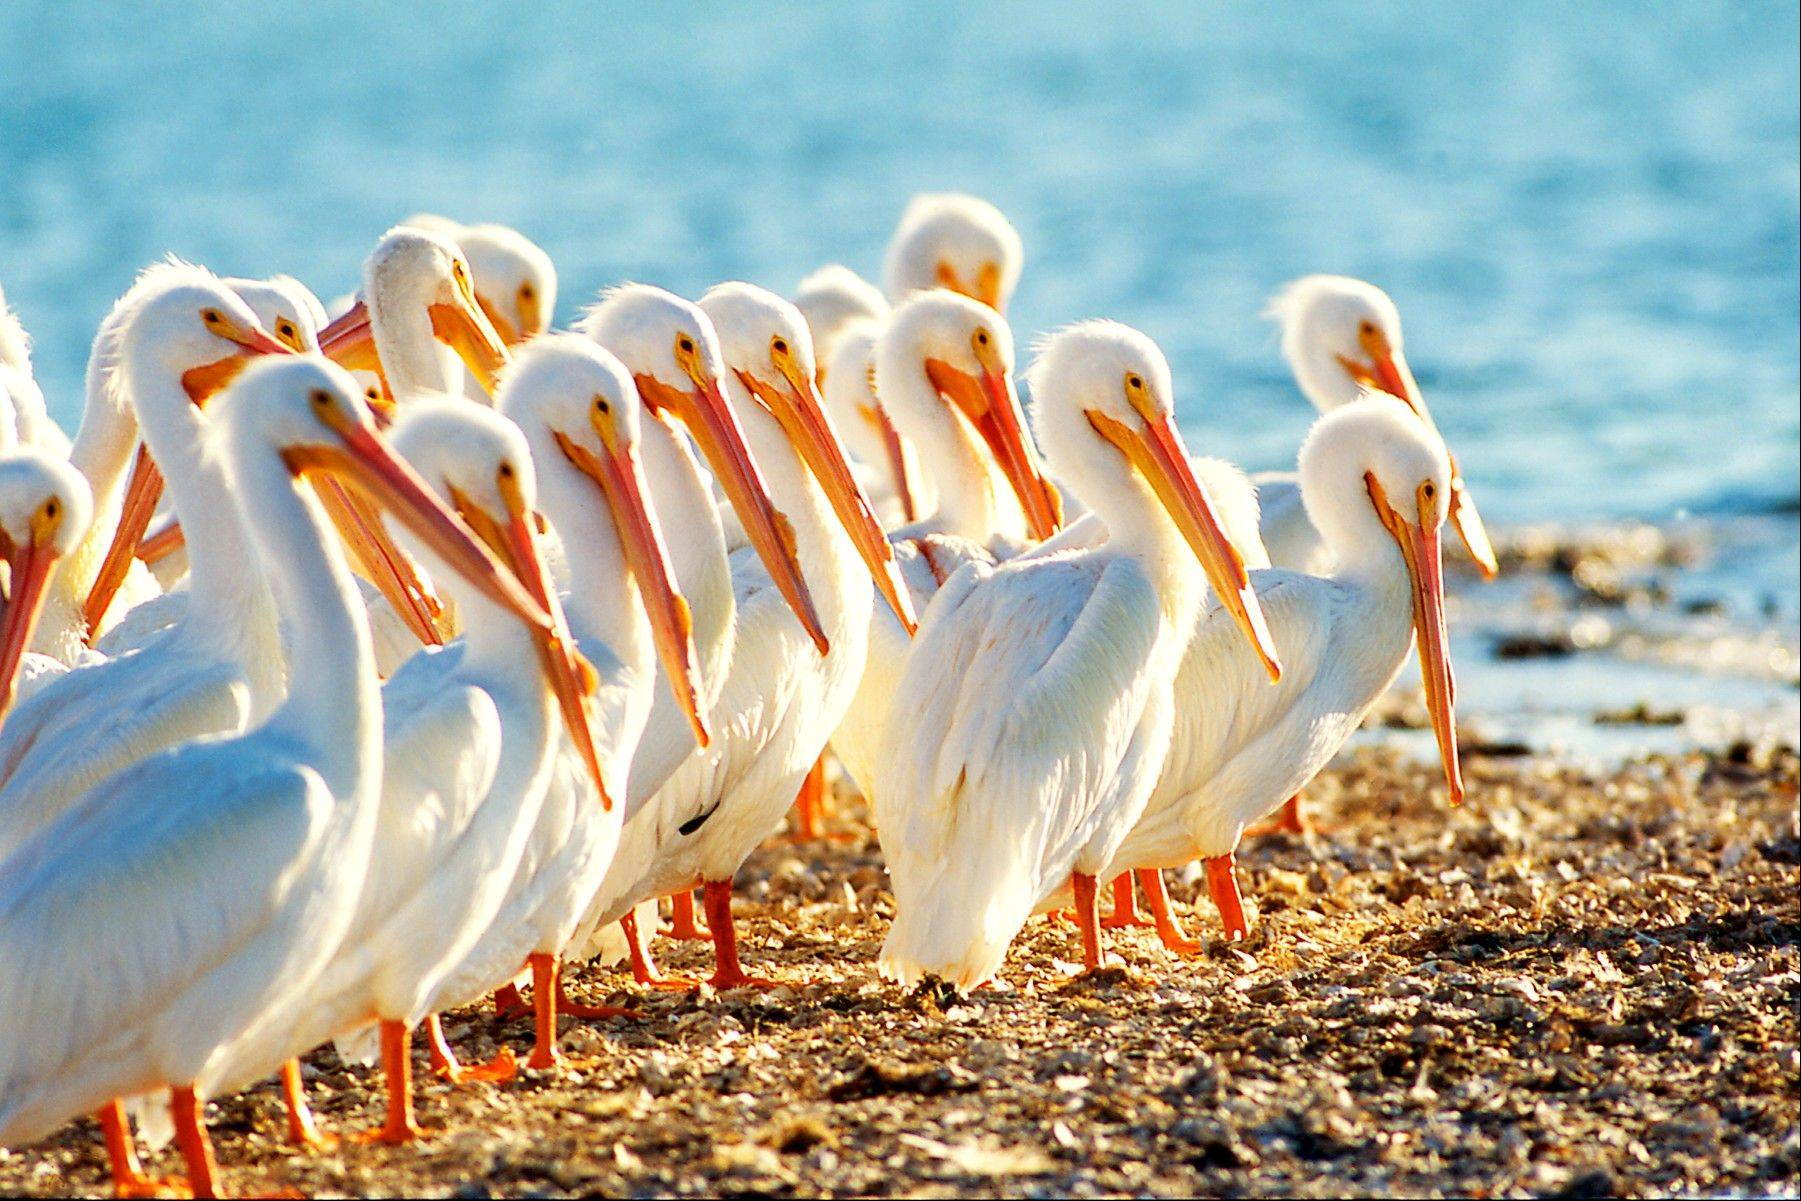 All kinds of birds, including these white pelicans, can be found on Sanibel Island in Florida.